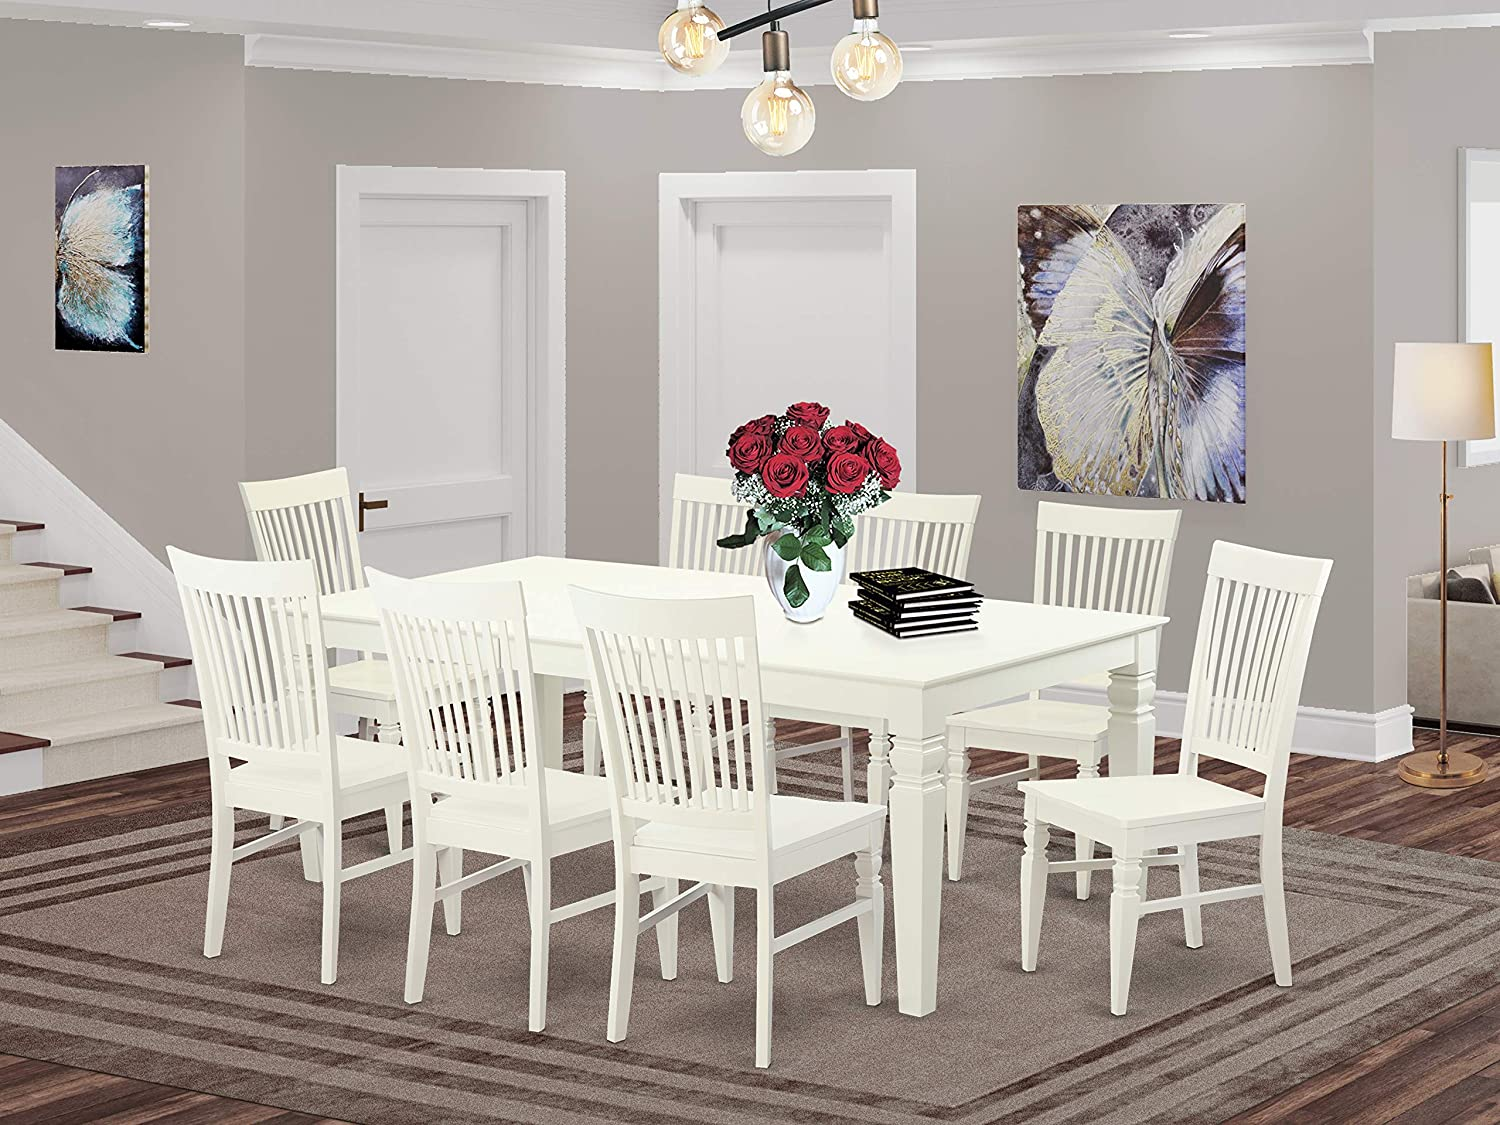 Amazon Com 9 Pctable Set With A Dining Table And 8 Dining Chairs In Linen White Table Chair Sets